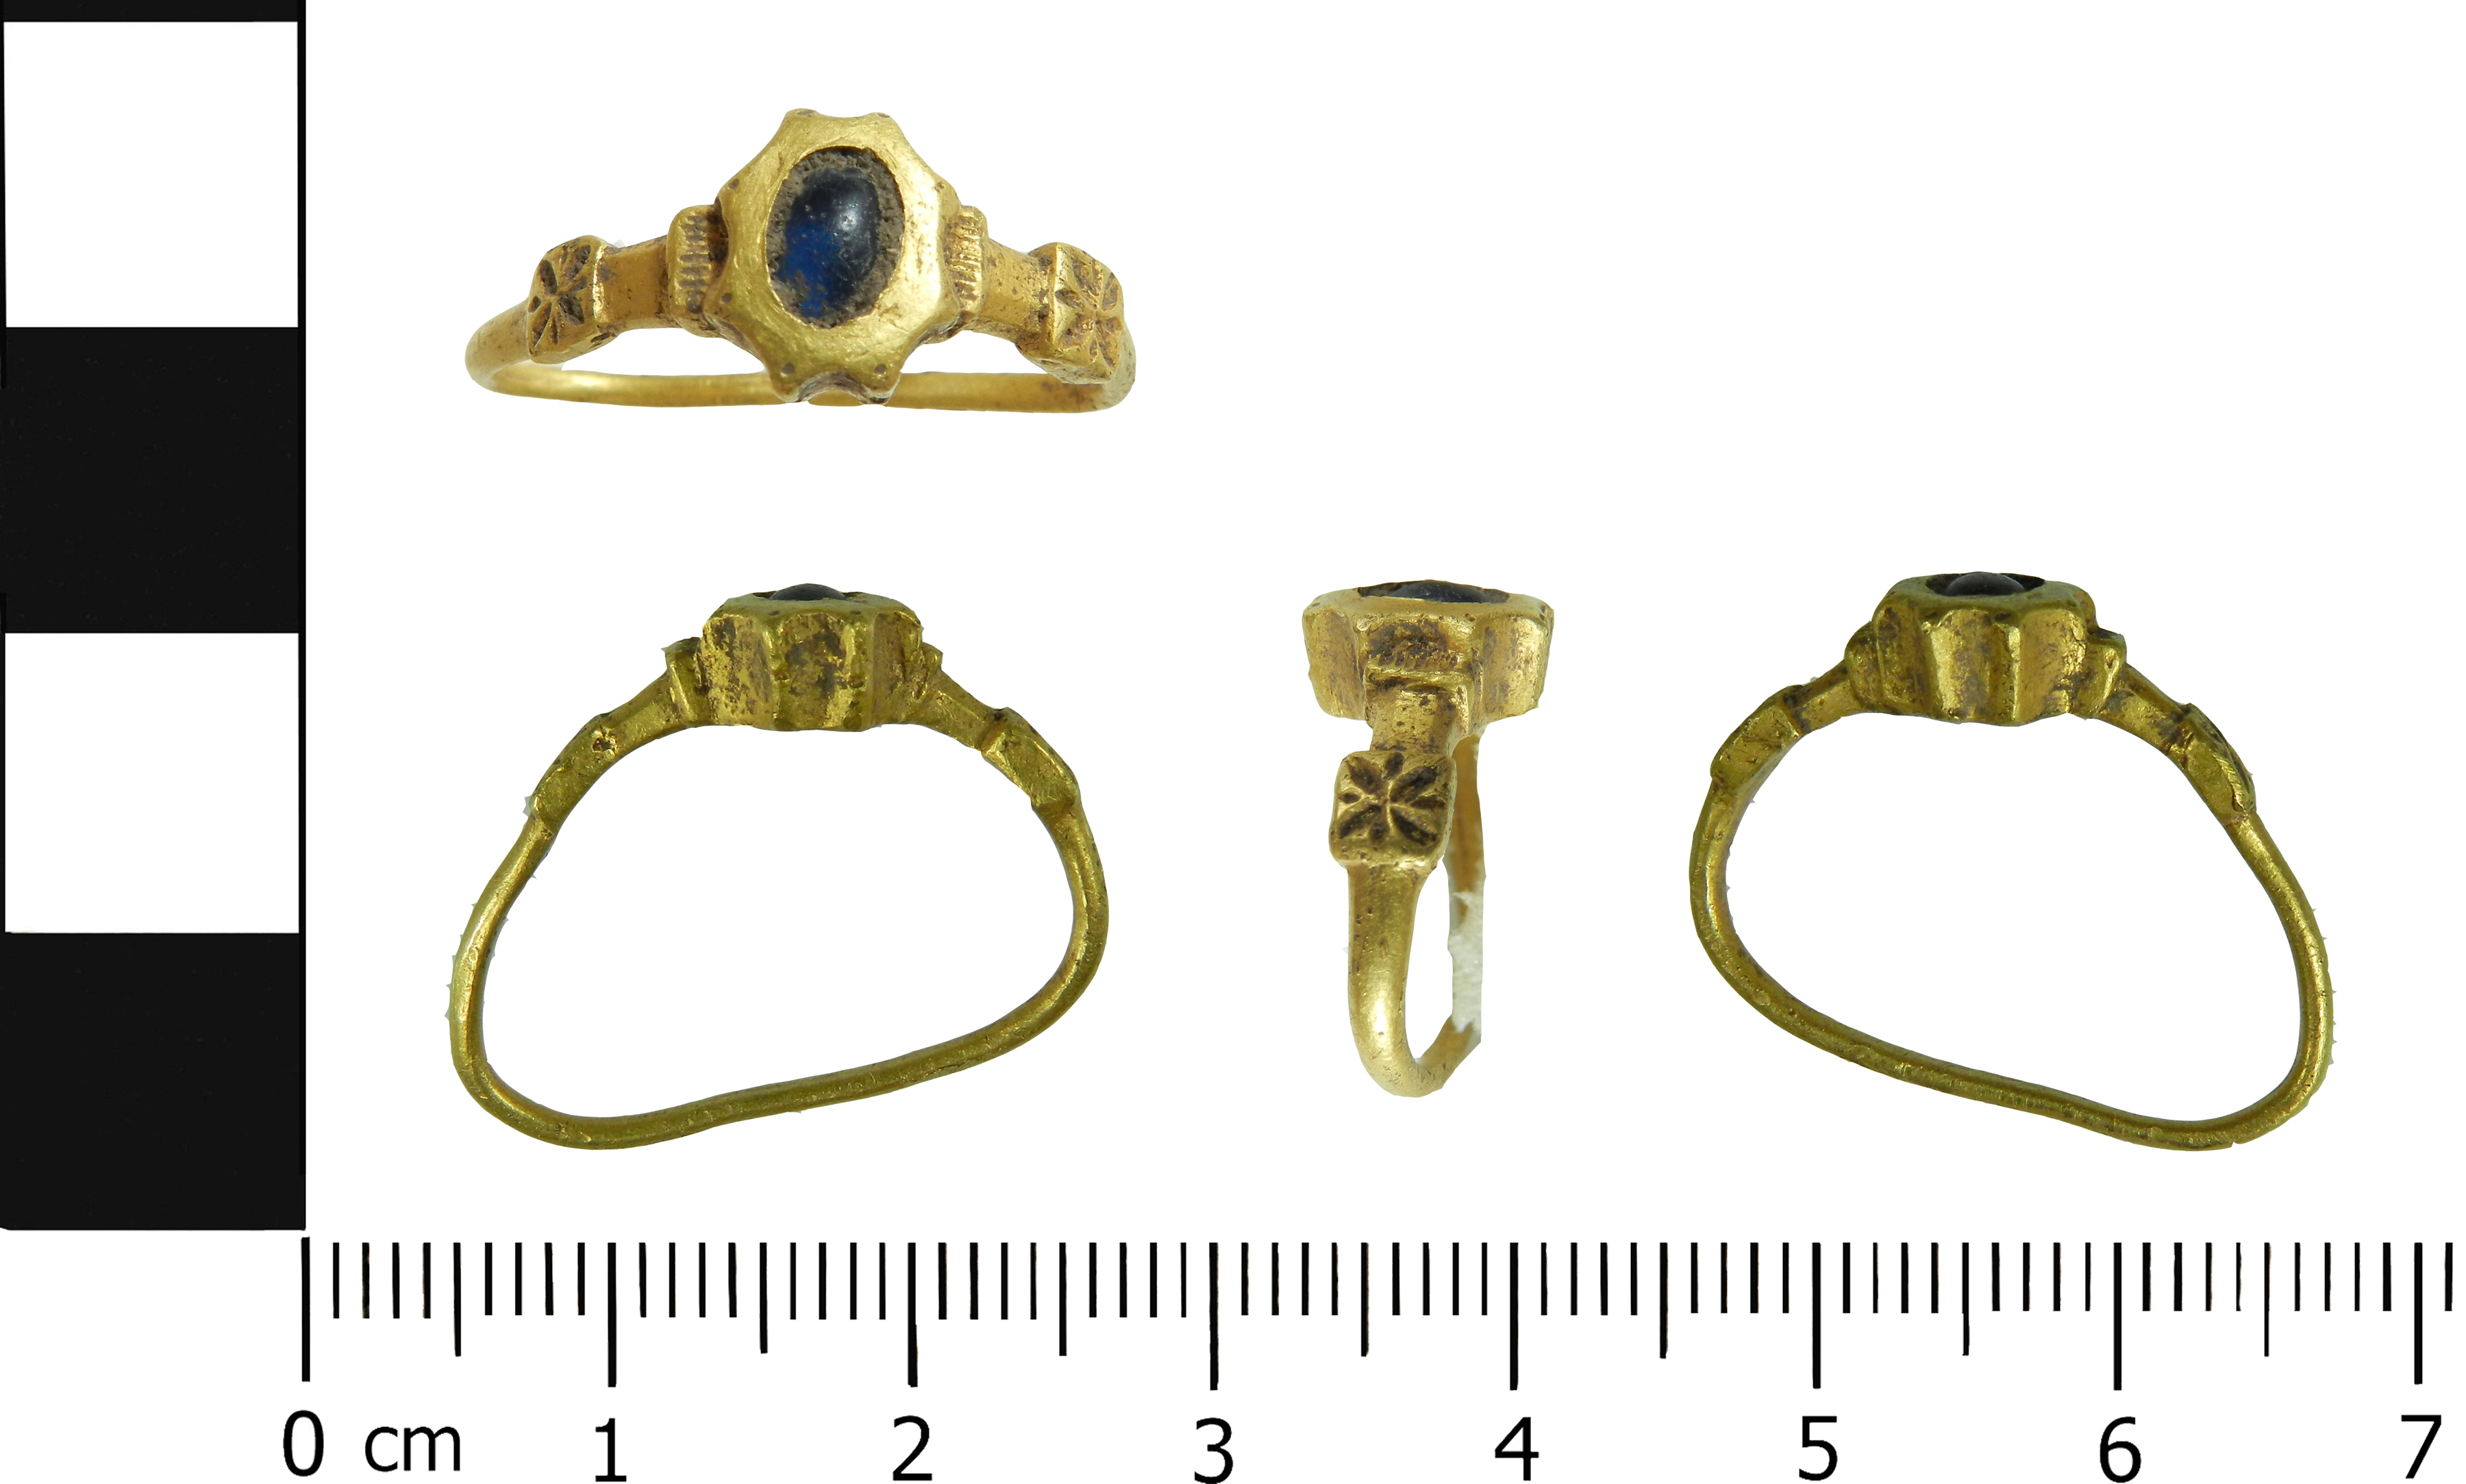 Gold and cobalt blue glass finger ring dating to the 14th century.